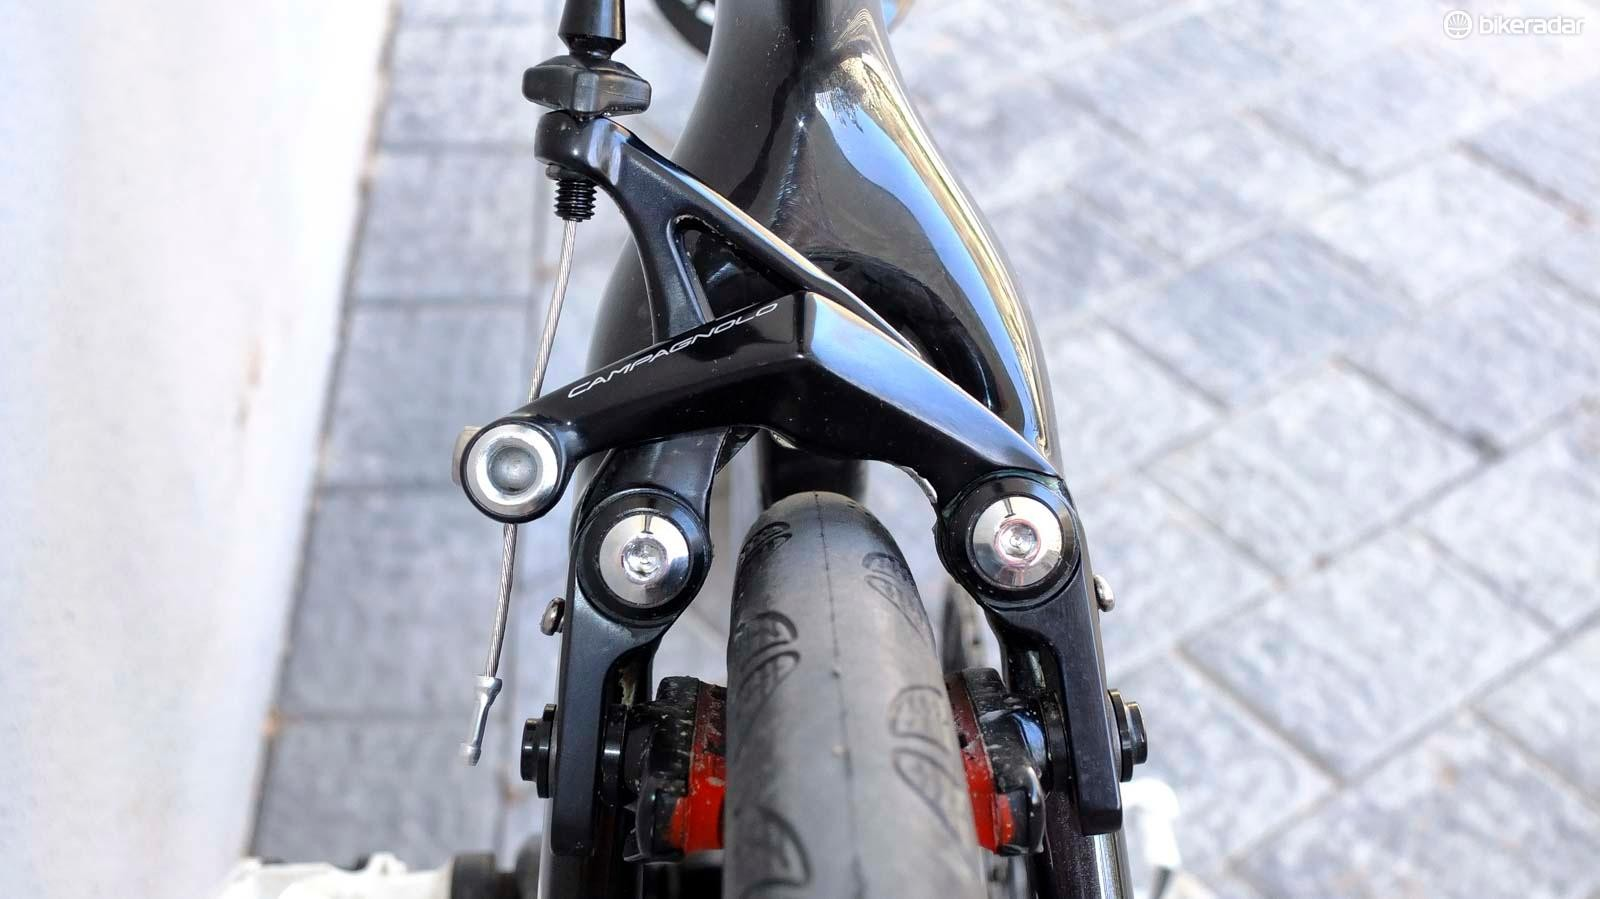 A new direct-mount rim brake allows clearance for tyres up to 32mm